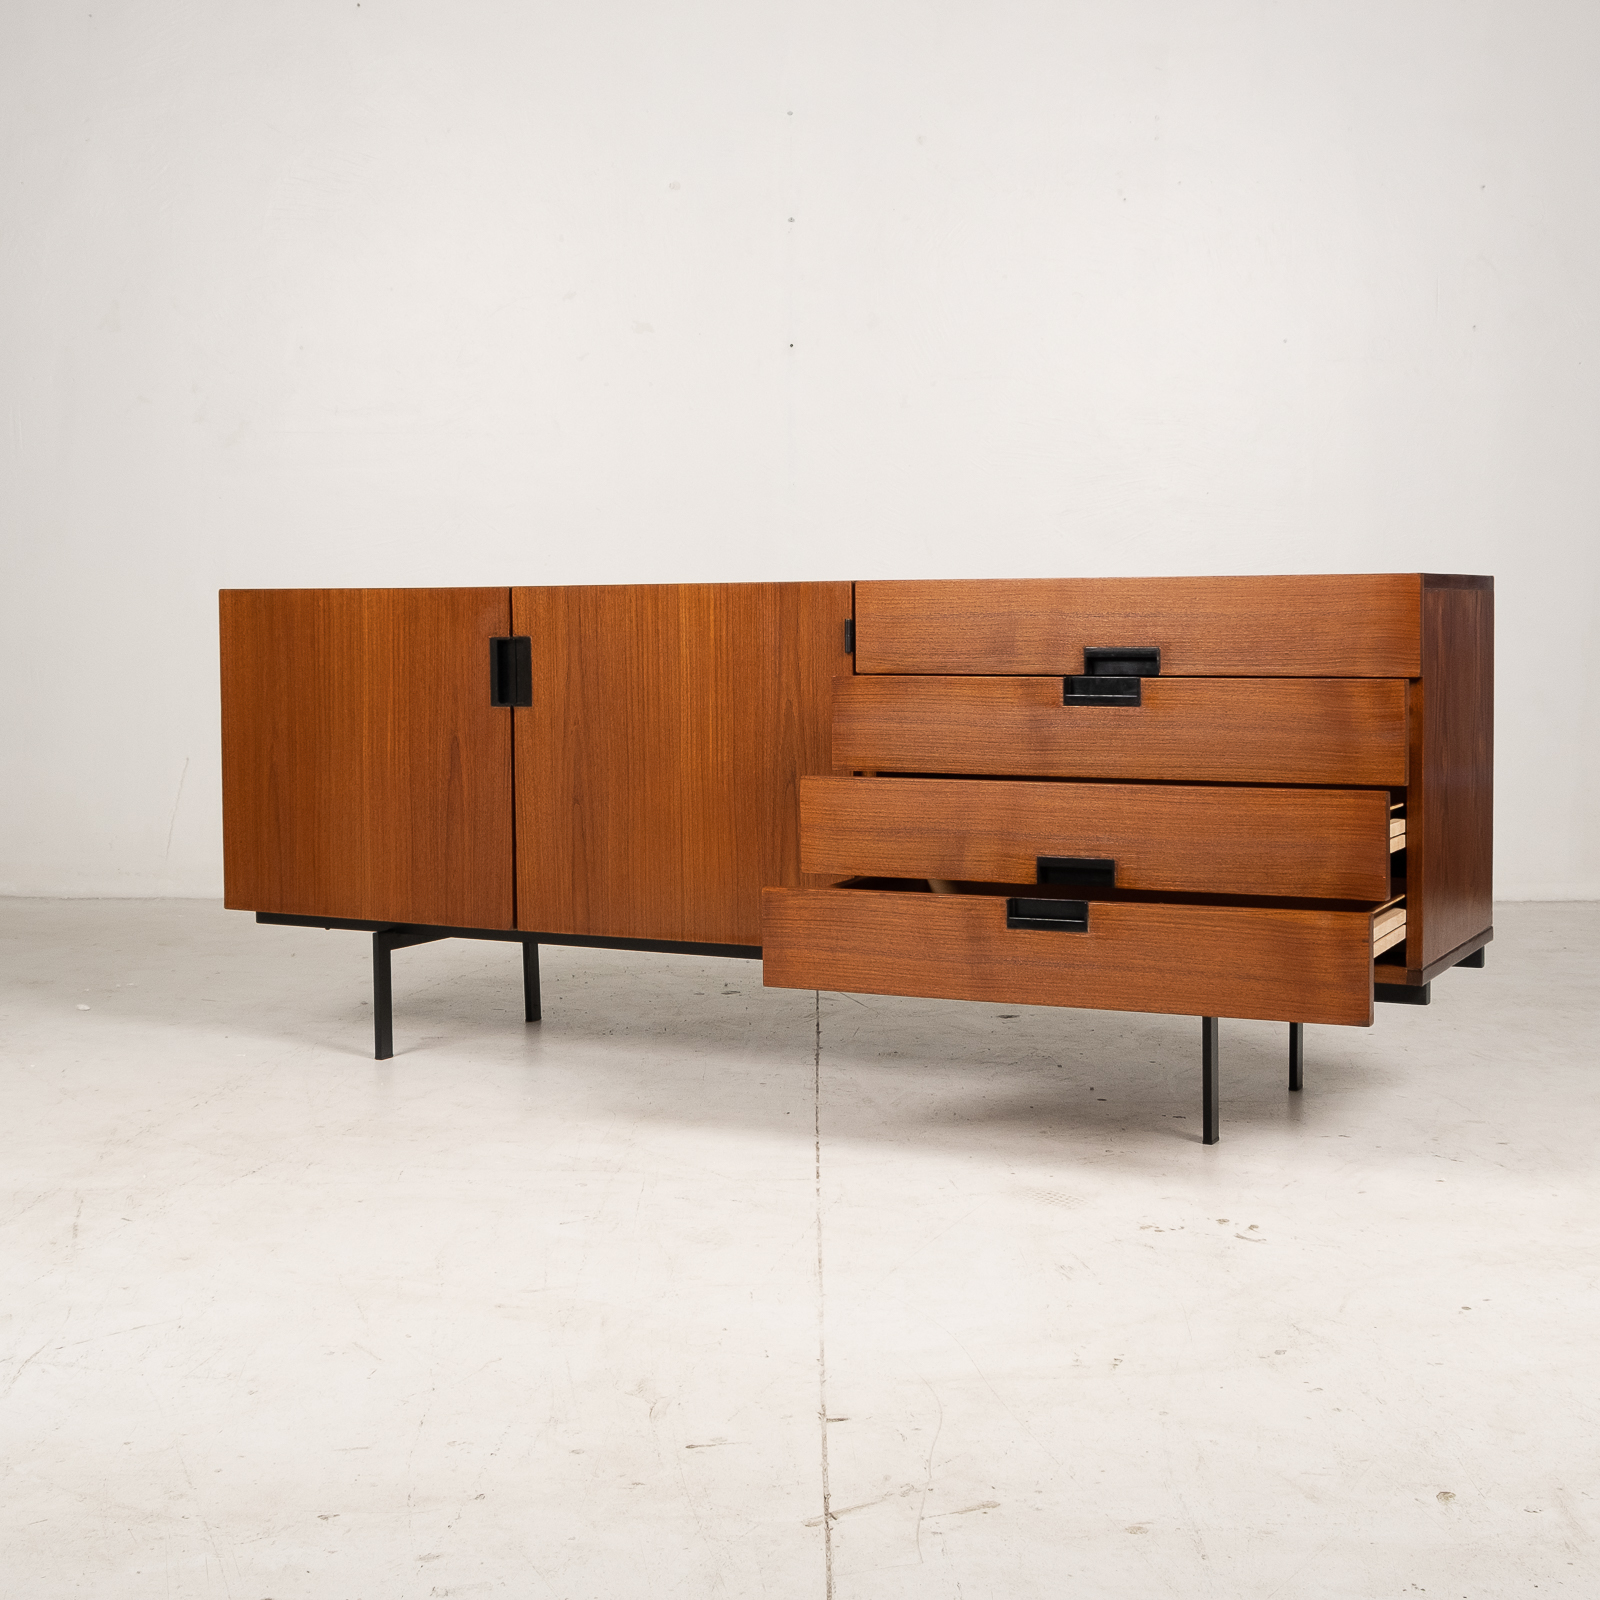 Du04 Japanese Series Sideboard By Cees Braakman For Pastoe, 1950s, The Netherlands9